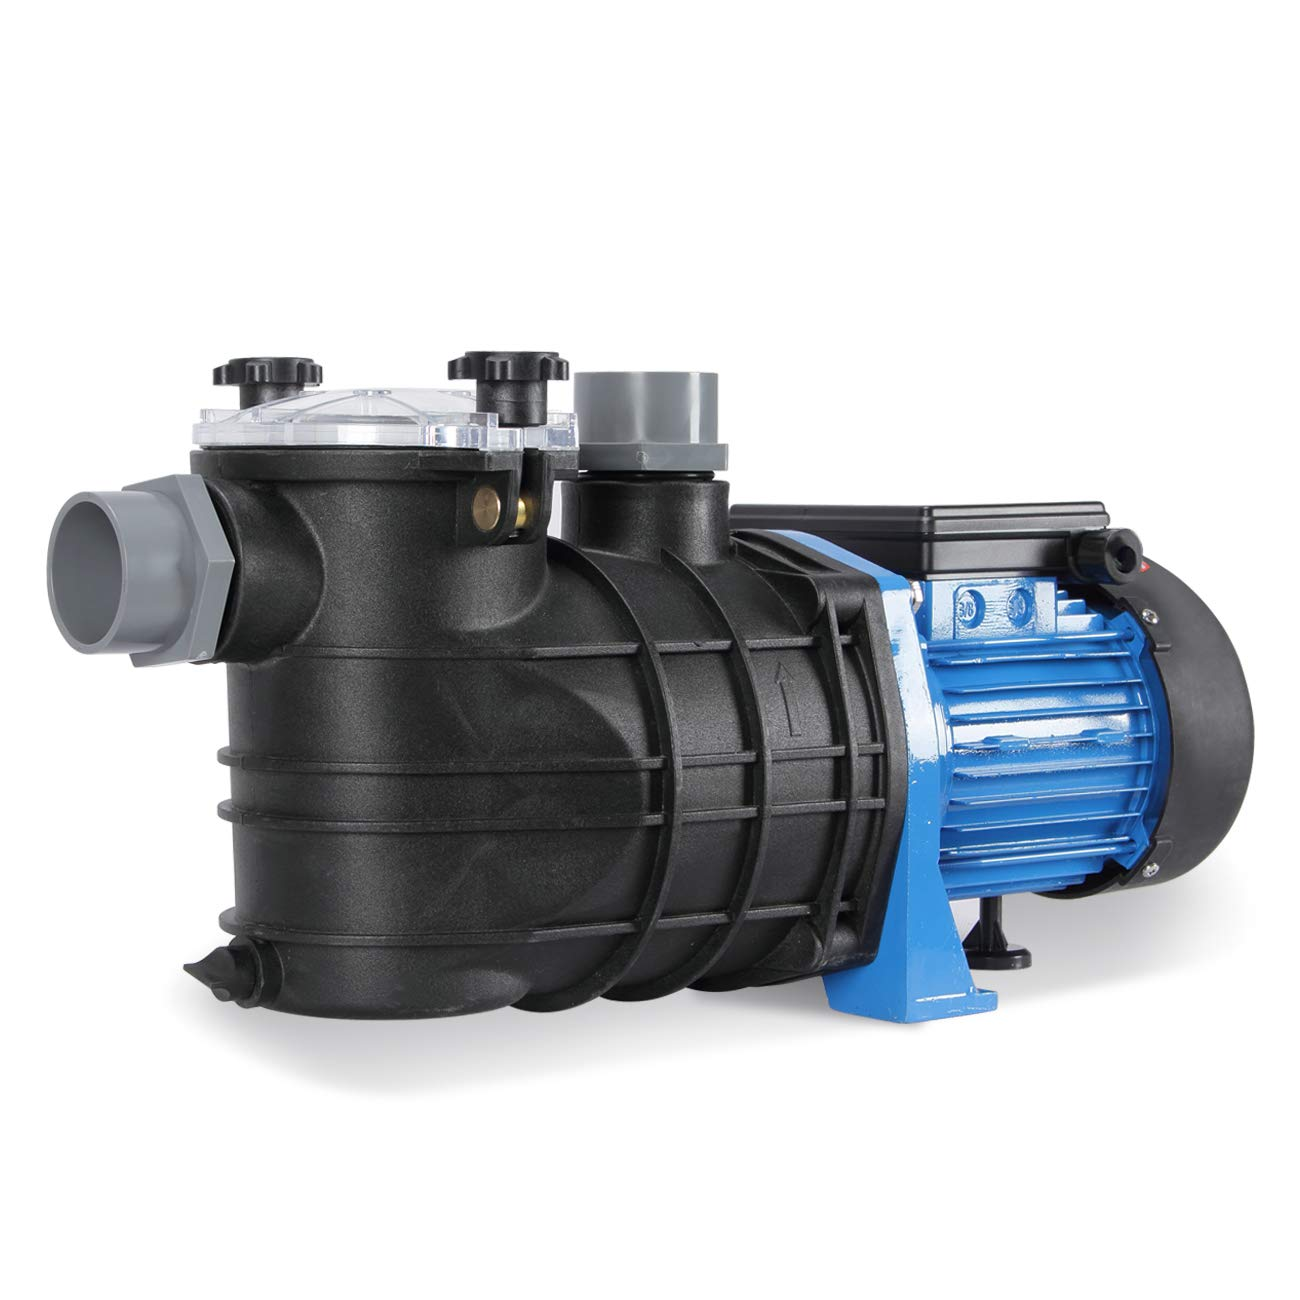 ARKSEN 1.2HP 900W Thermal Protected Swimming Pool Pump (UL Listed) Pond Spa Electric 4440GPH w/Hose Adapters